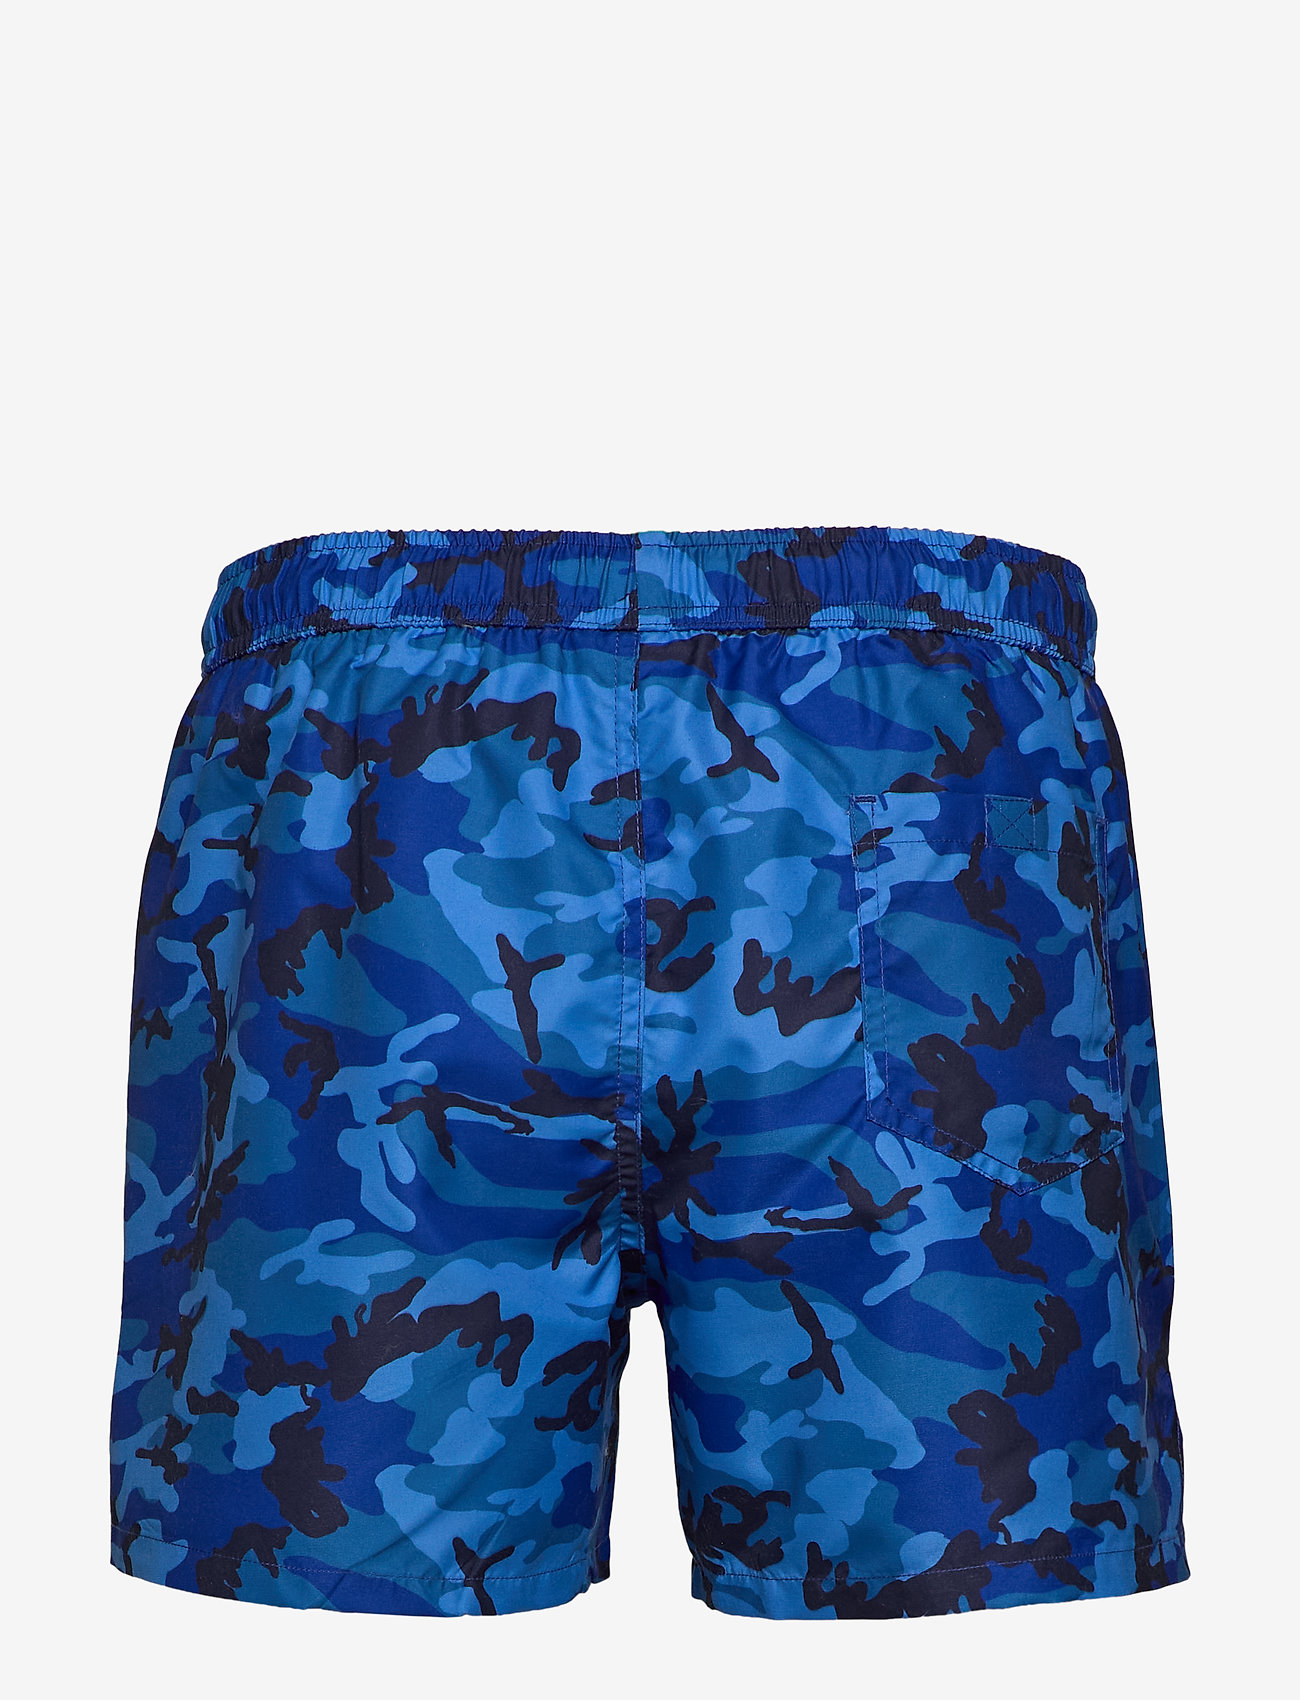 Frank Dandy - Camo Print Breeze - szorty kąpielowe - blue - 1